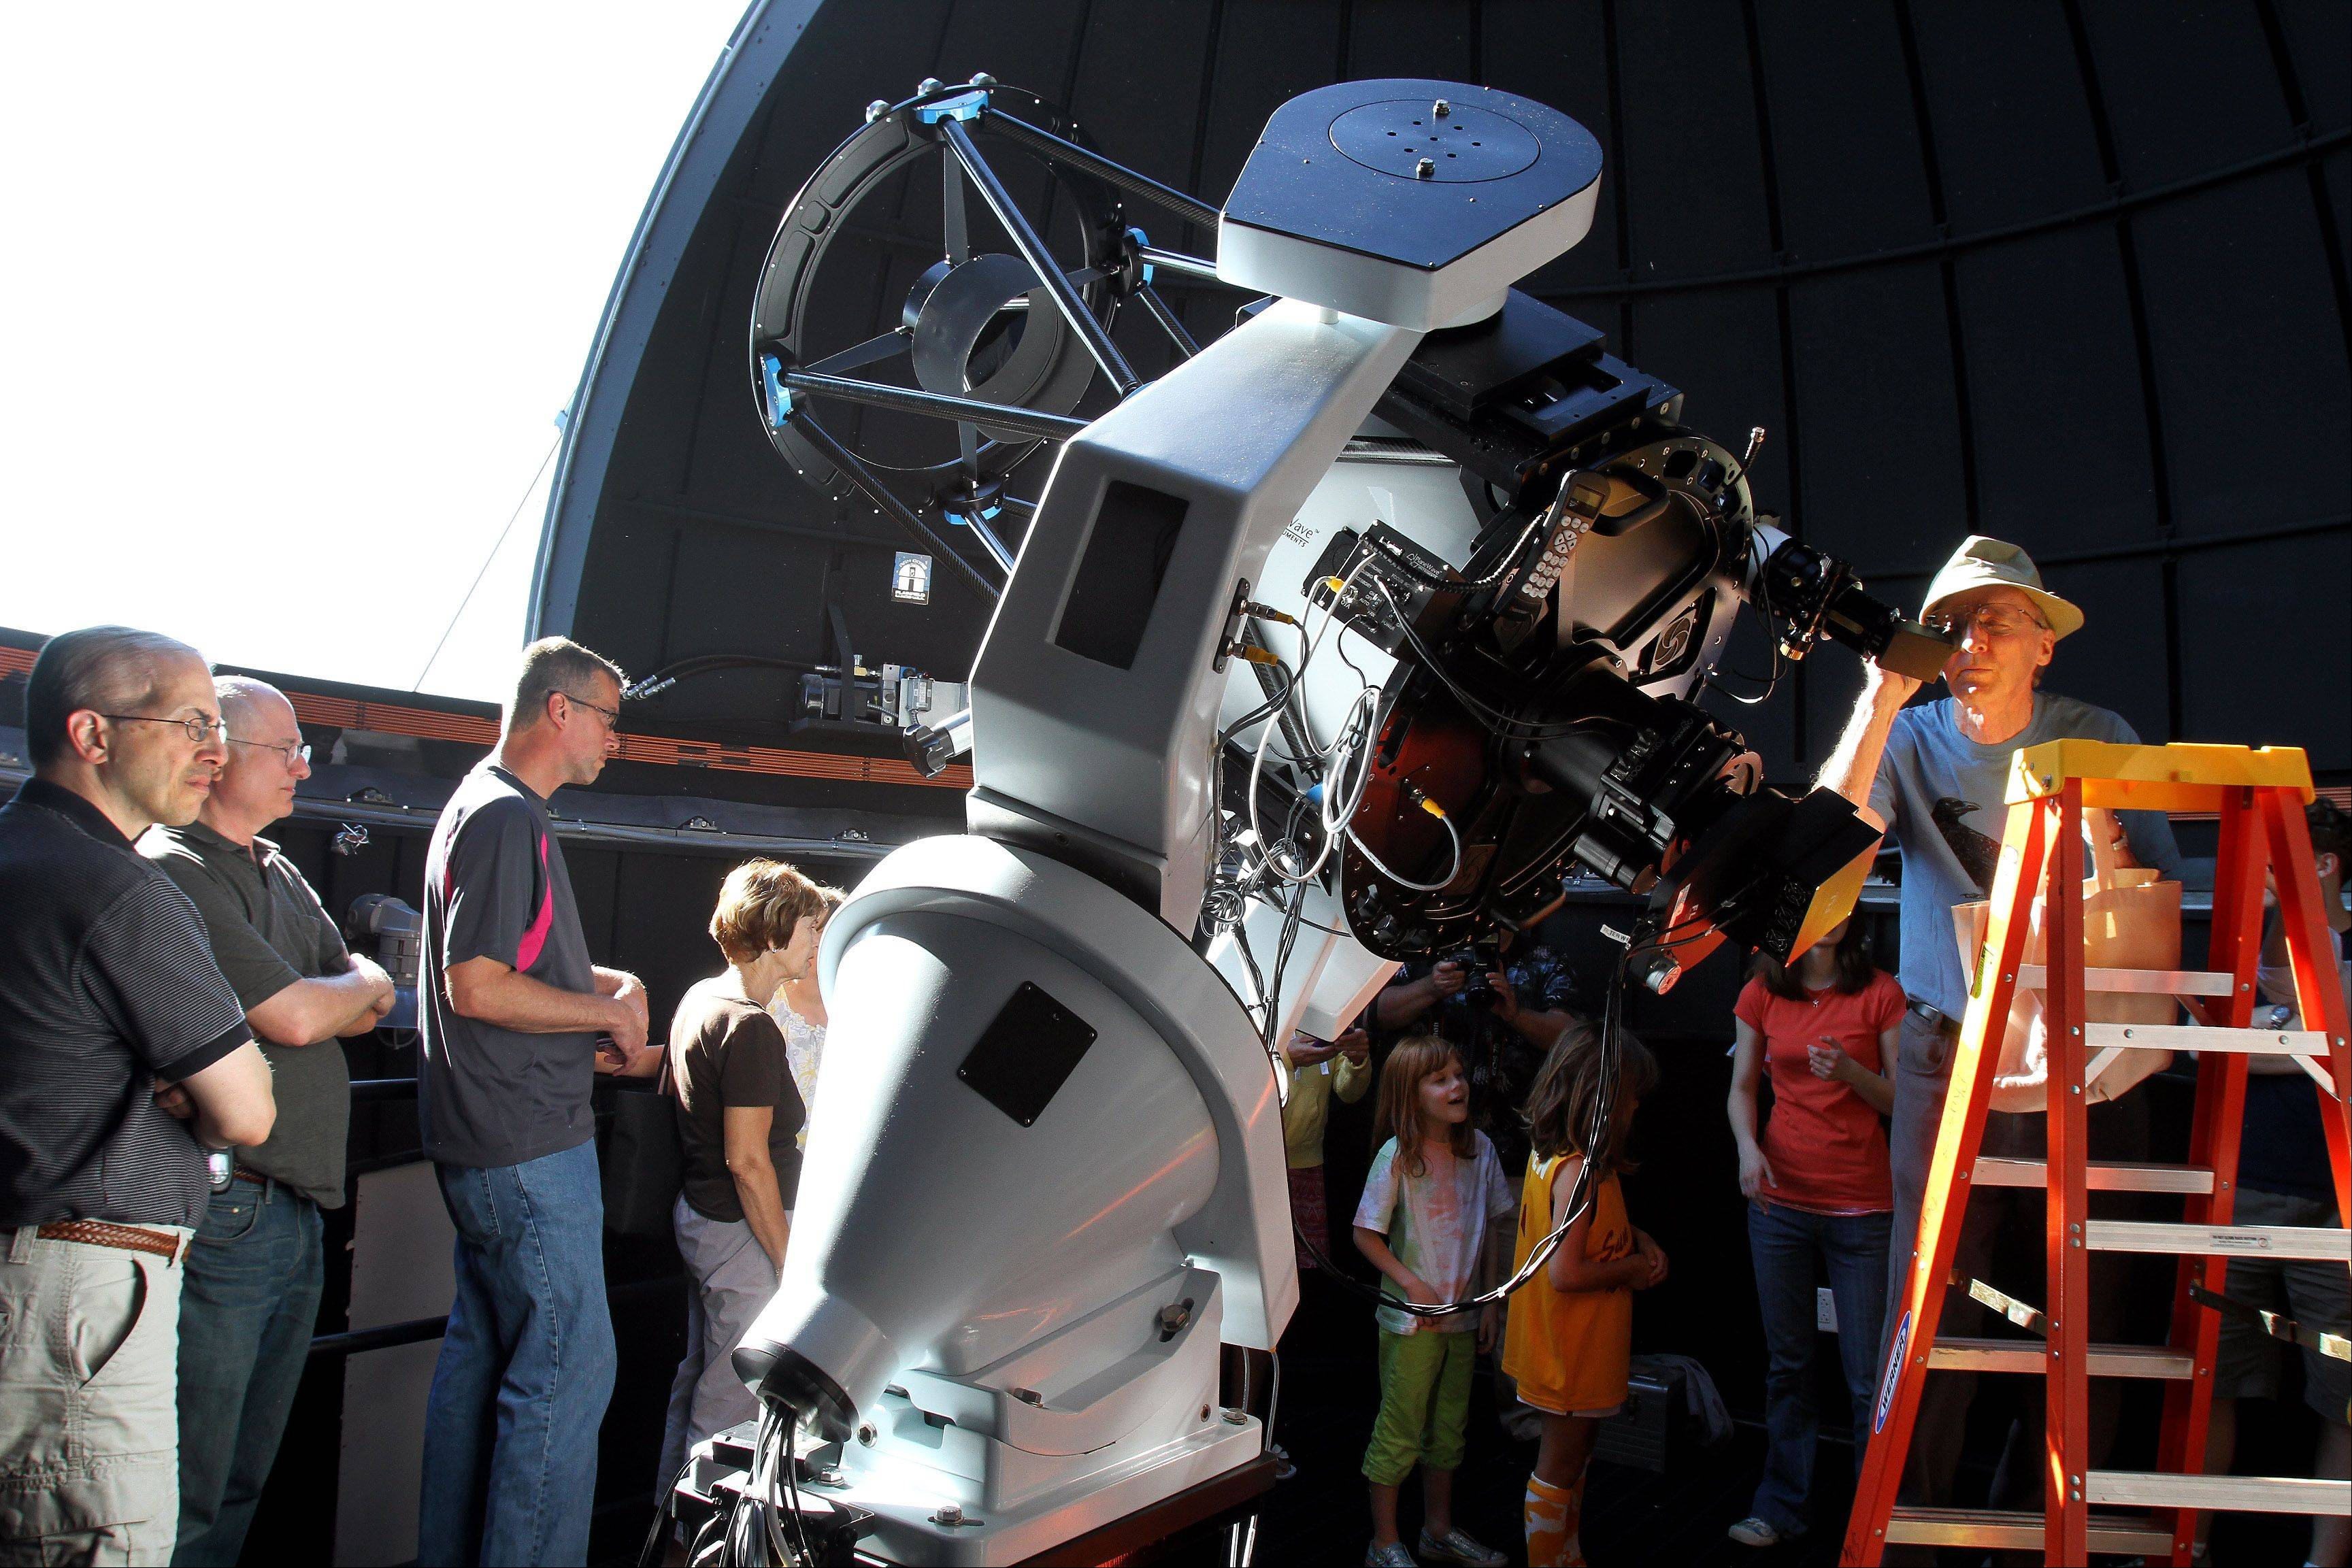 Louis Bowers of Mount Prospect takes a look through the main telescope in the Wheaton College Astronomical Observatory, which opened Tuesday evening for free viewings of the Transit of Venus. Hundreds of people lined up for the event.